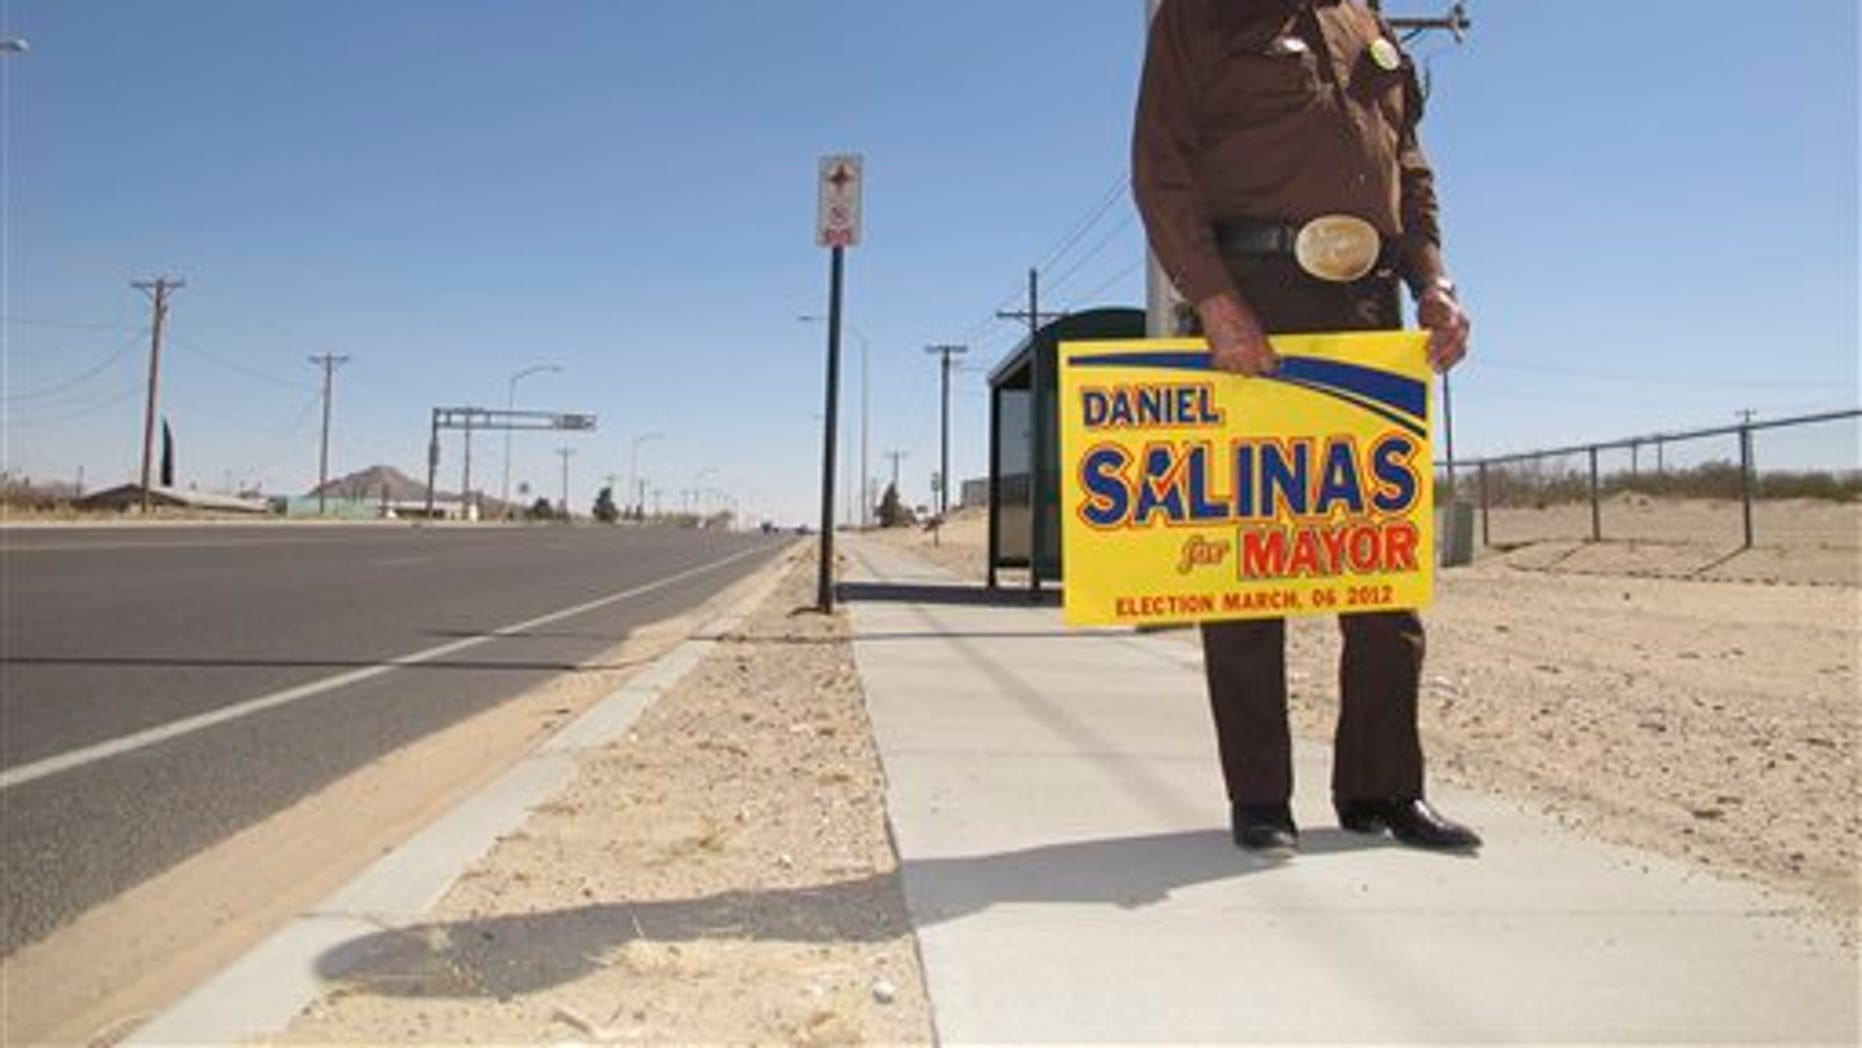 Everardo Holguin, 75, stands with a poster supporting his candidate for mayor Tuesday March. 6, 2012, in Sunland Park, New Mexico. The city of 14,000 inhabitants has undergone a turbulent mayoral campaign with candidate Gerardo Hernandez involved in a sex scandal and Mayor-elect Daniel Salinas facing charges of extorting his rival and a city official. (AP Photo/Juan Carlos Llorca)